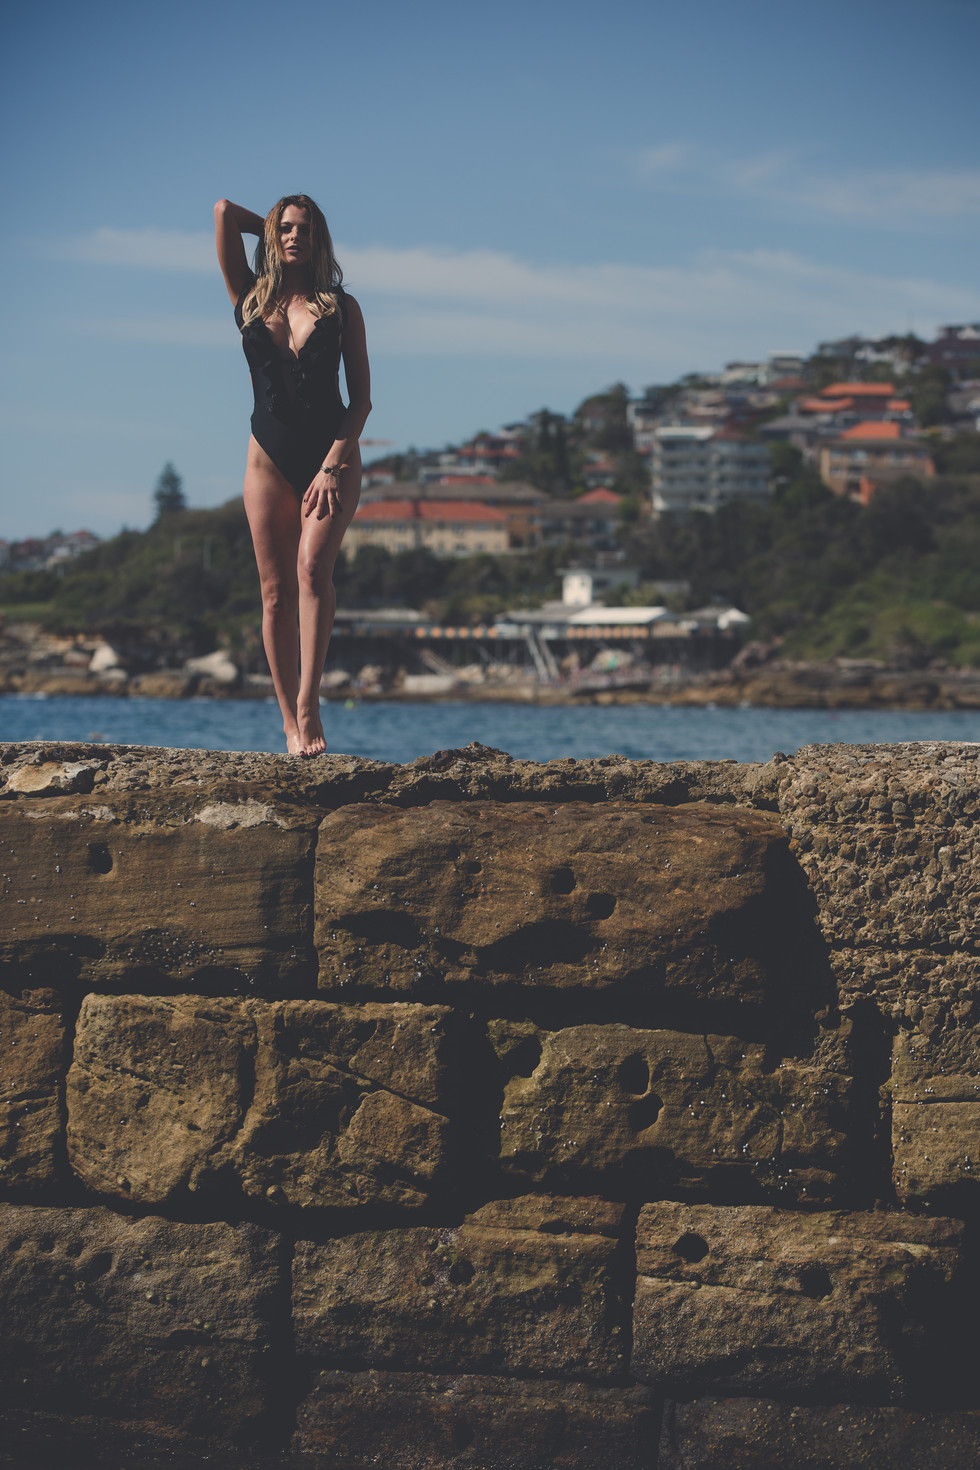 Kristy__by_CoogeePhotography-2236100.jpg